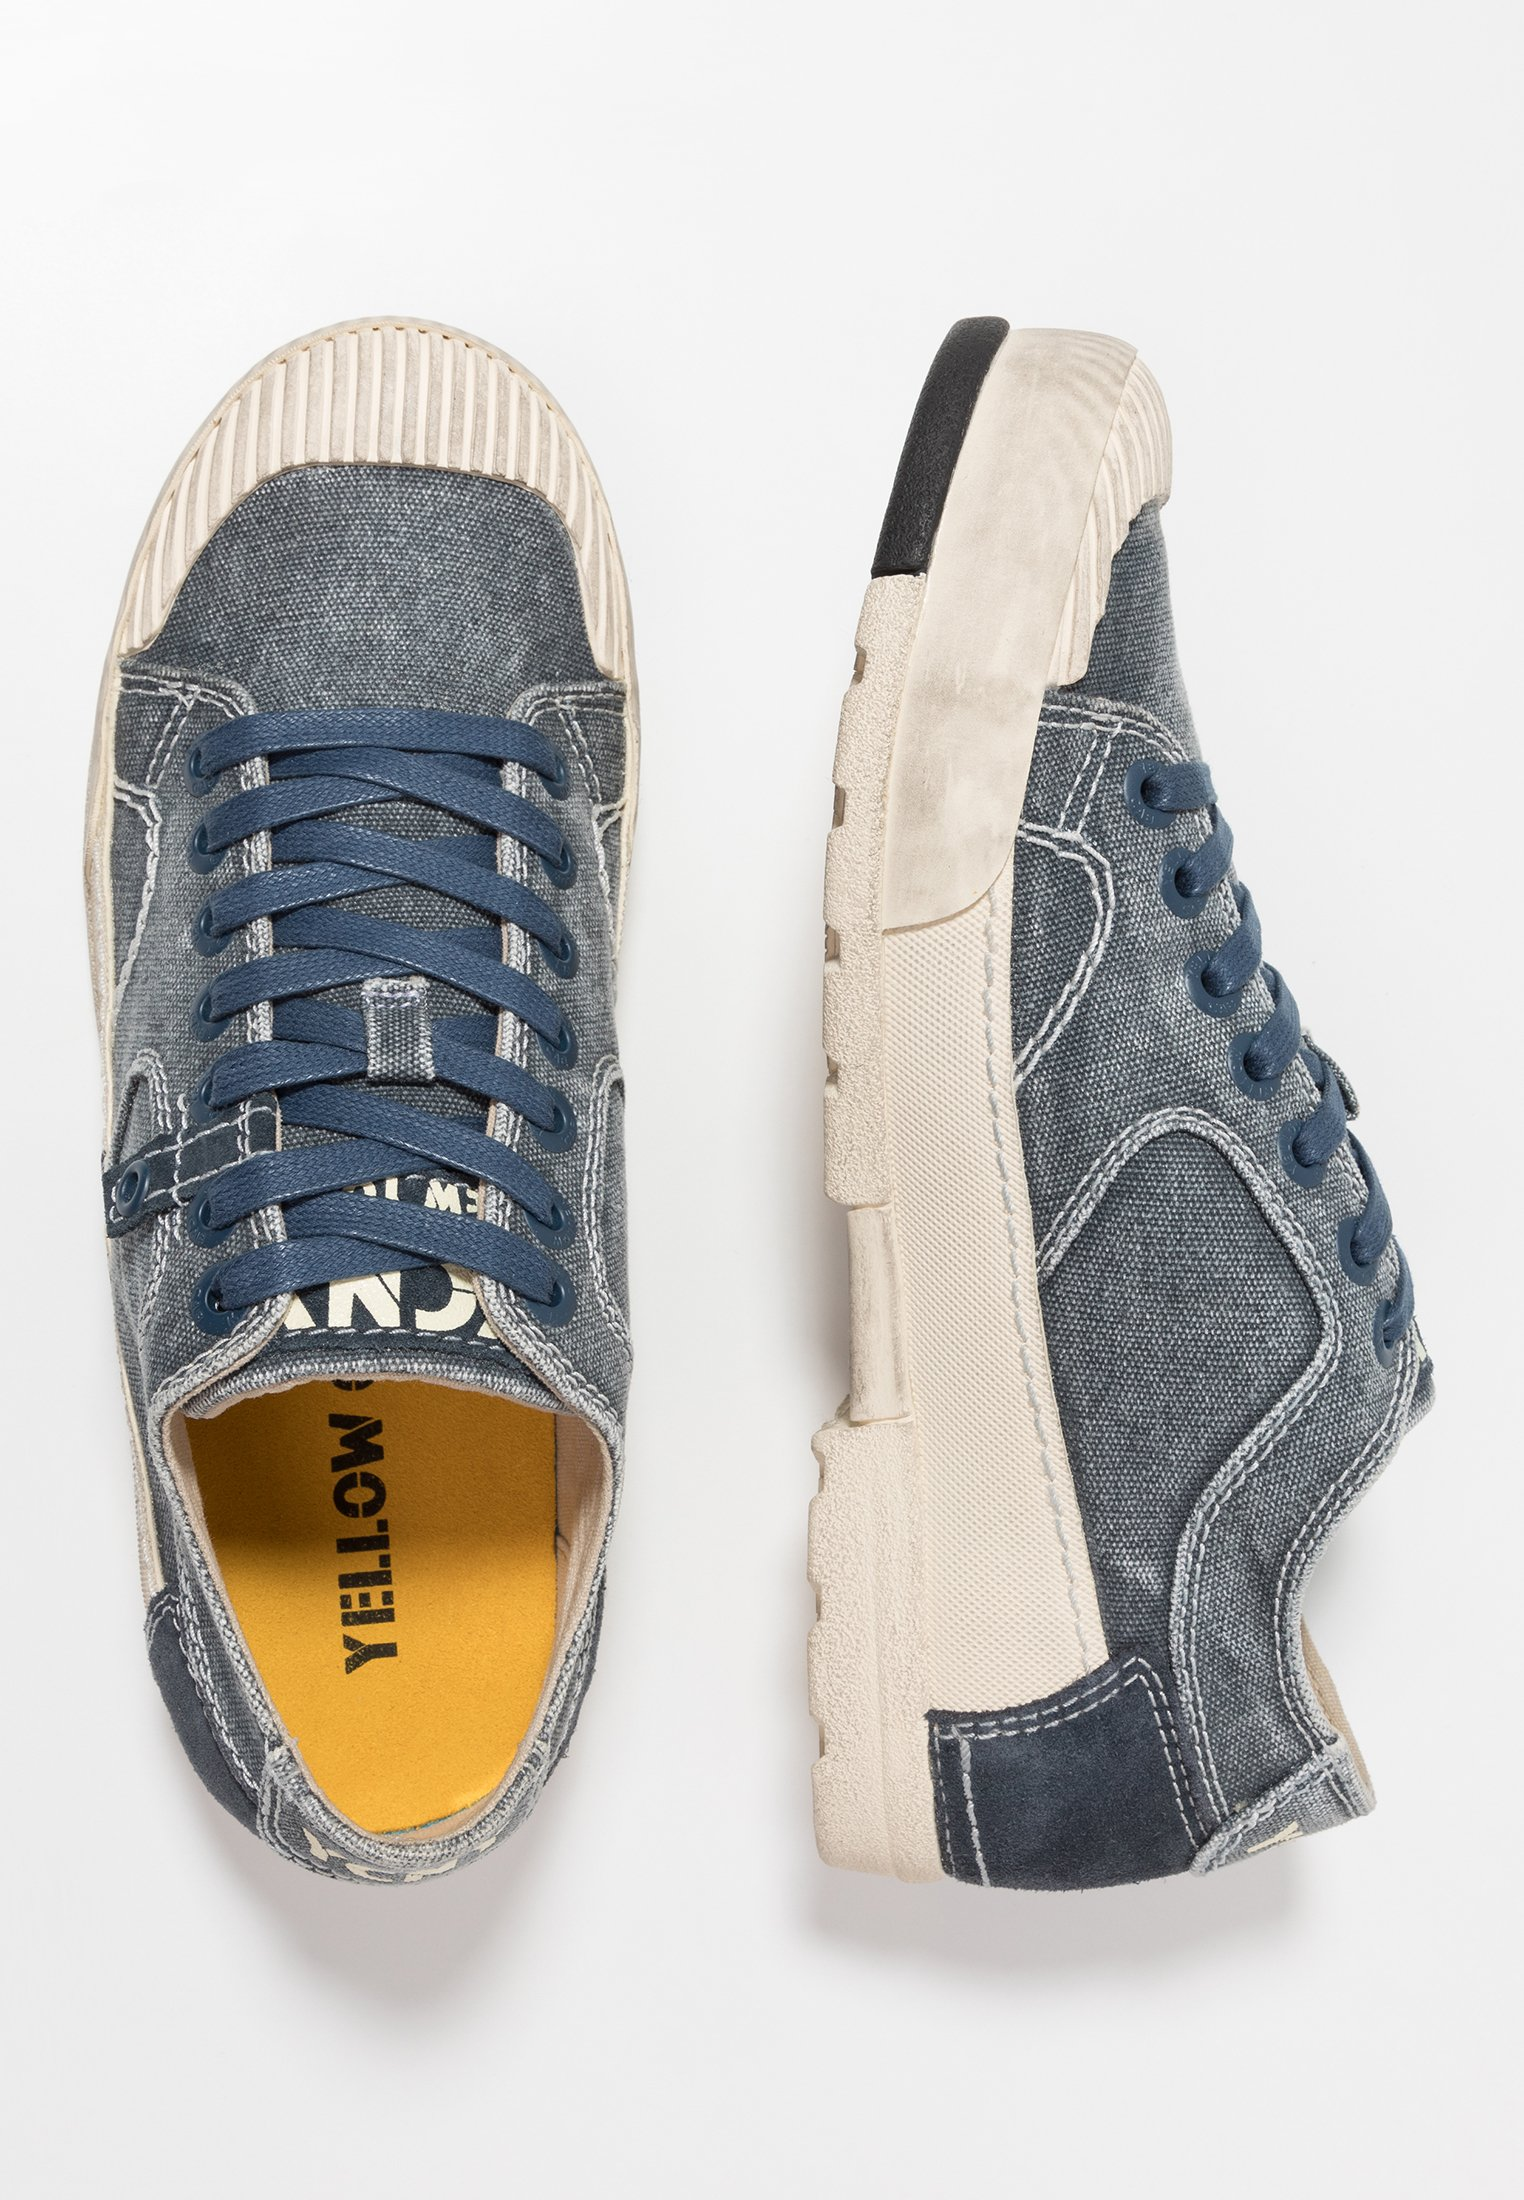 Yellow Cab MUD - Trainers - jeans